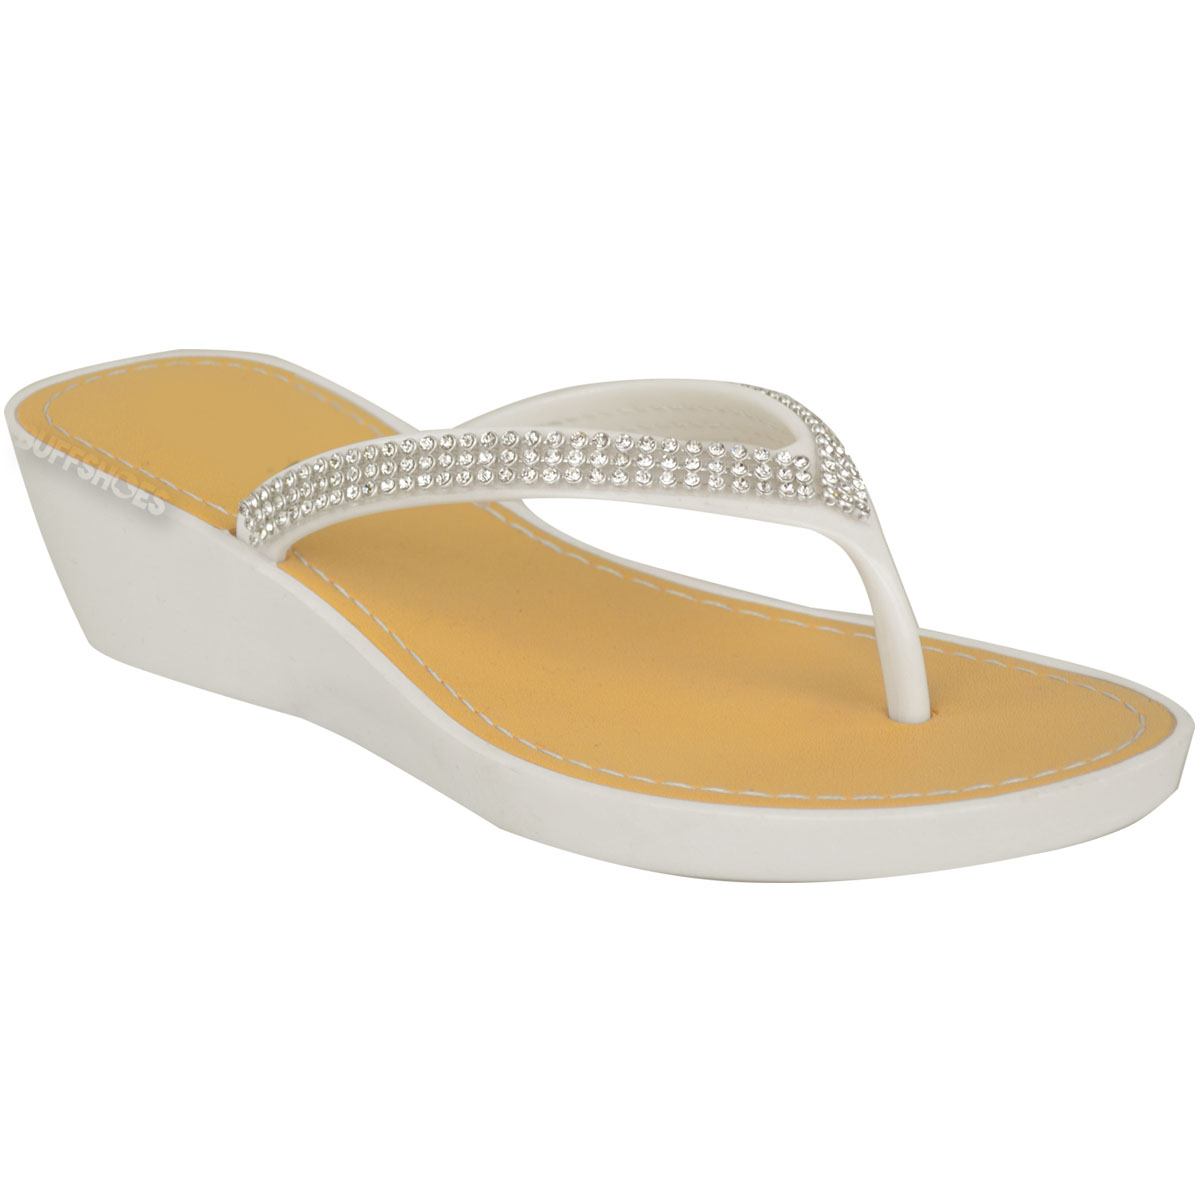 NEW-JELLY-SANDALS-WOMENS-LADIES-DIAMANTE-SUMMER-HOLIDAY-COMFORTS-FLIP-FLOPS-SIZE thumbnail 9